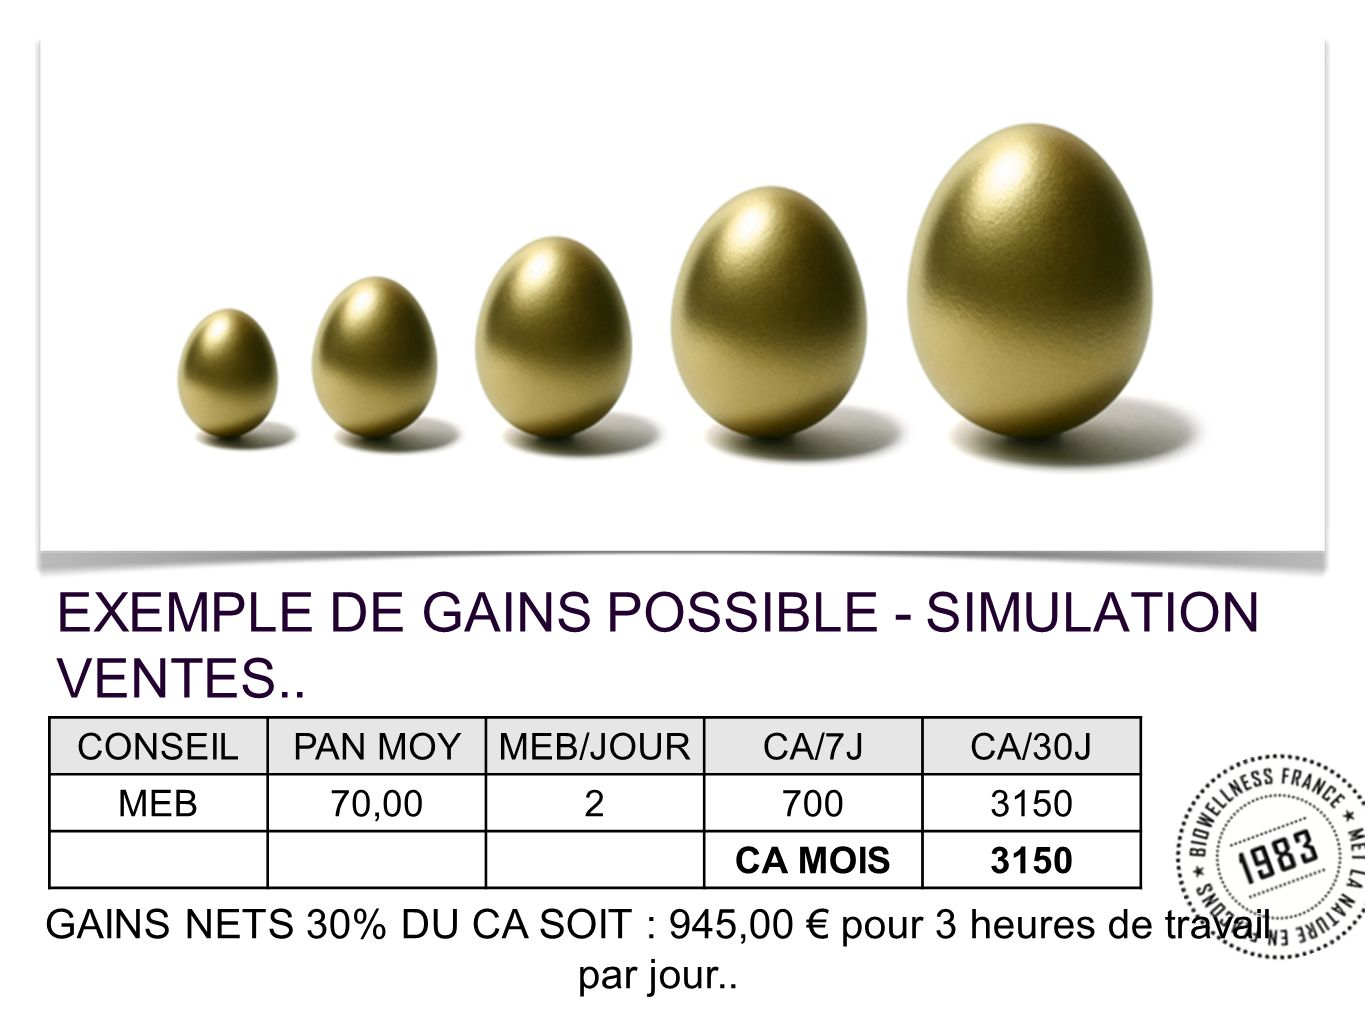 EXEMPLE DE GAINS POSSIBLE - SIMULATION VENTES..